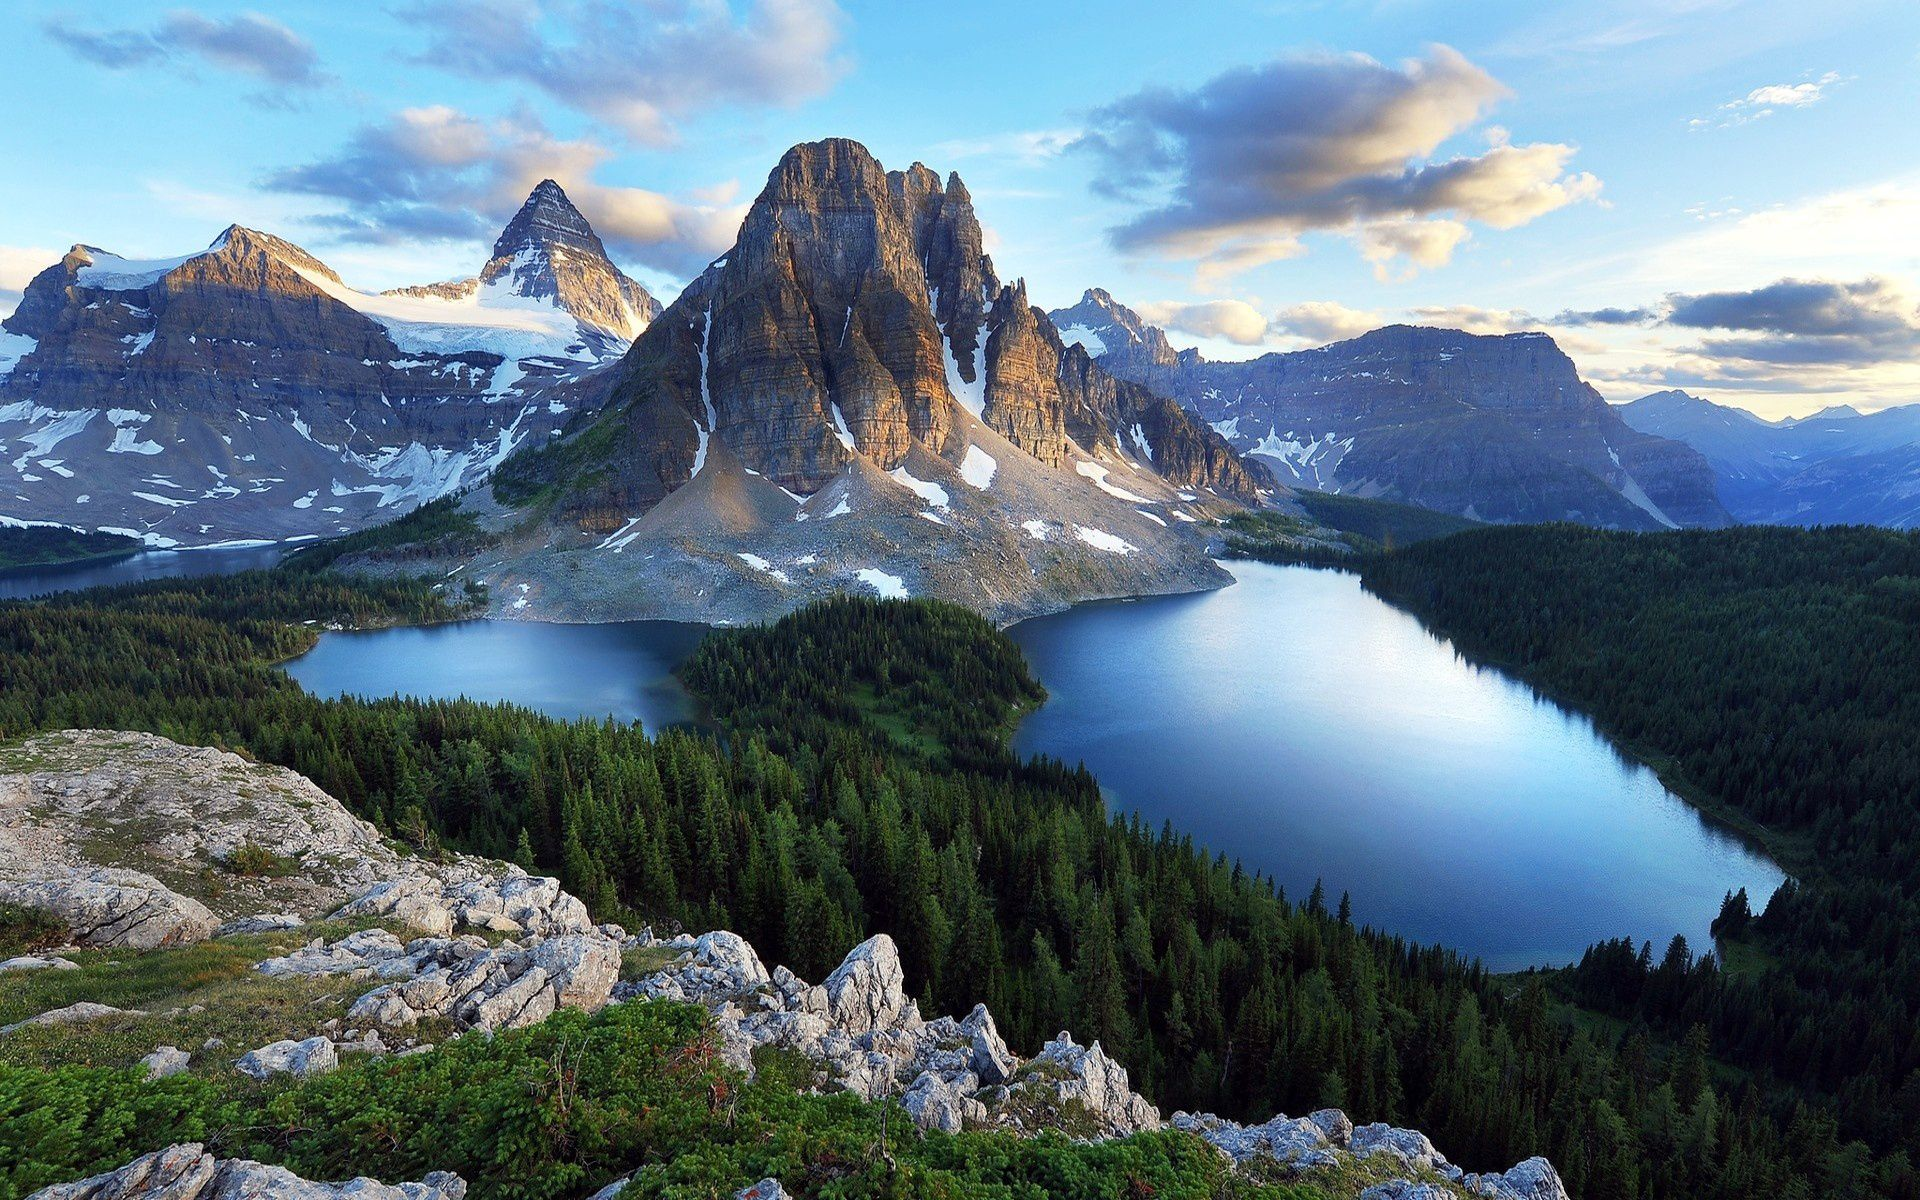 Mountain Nature Wallpaper (With images) Cool places to